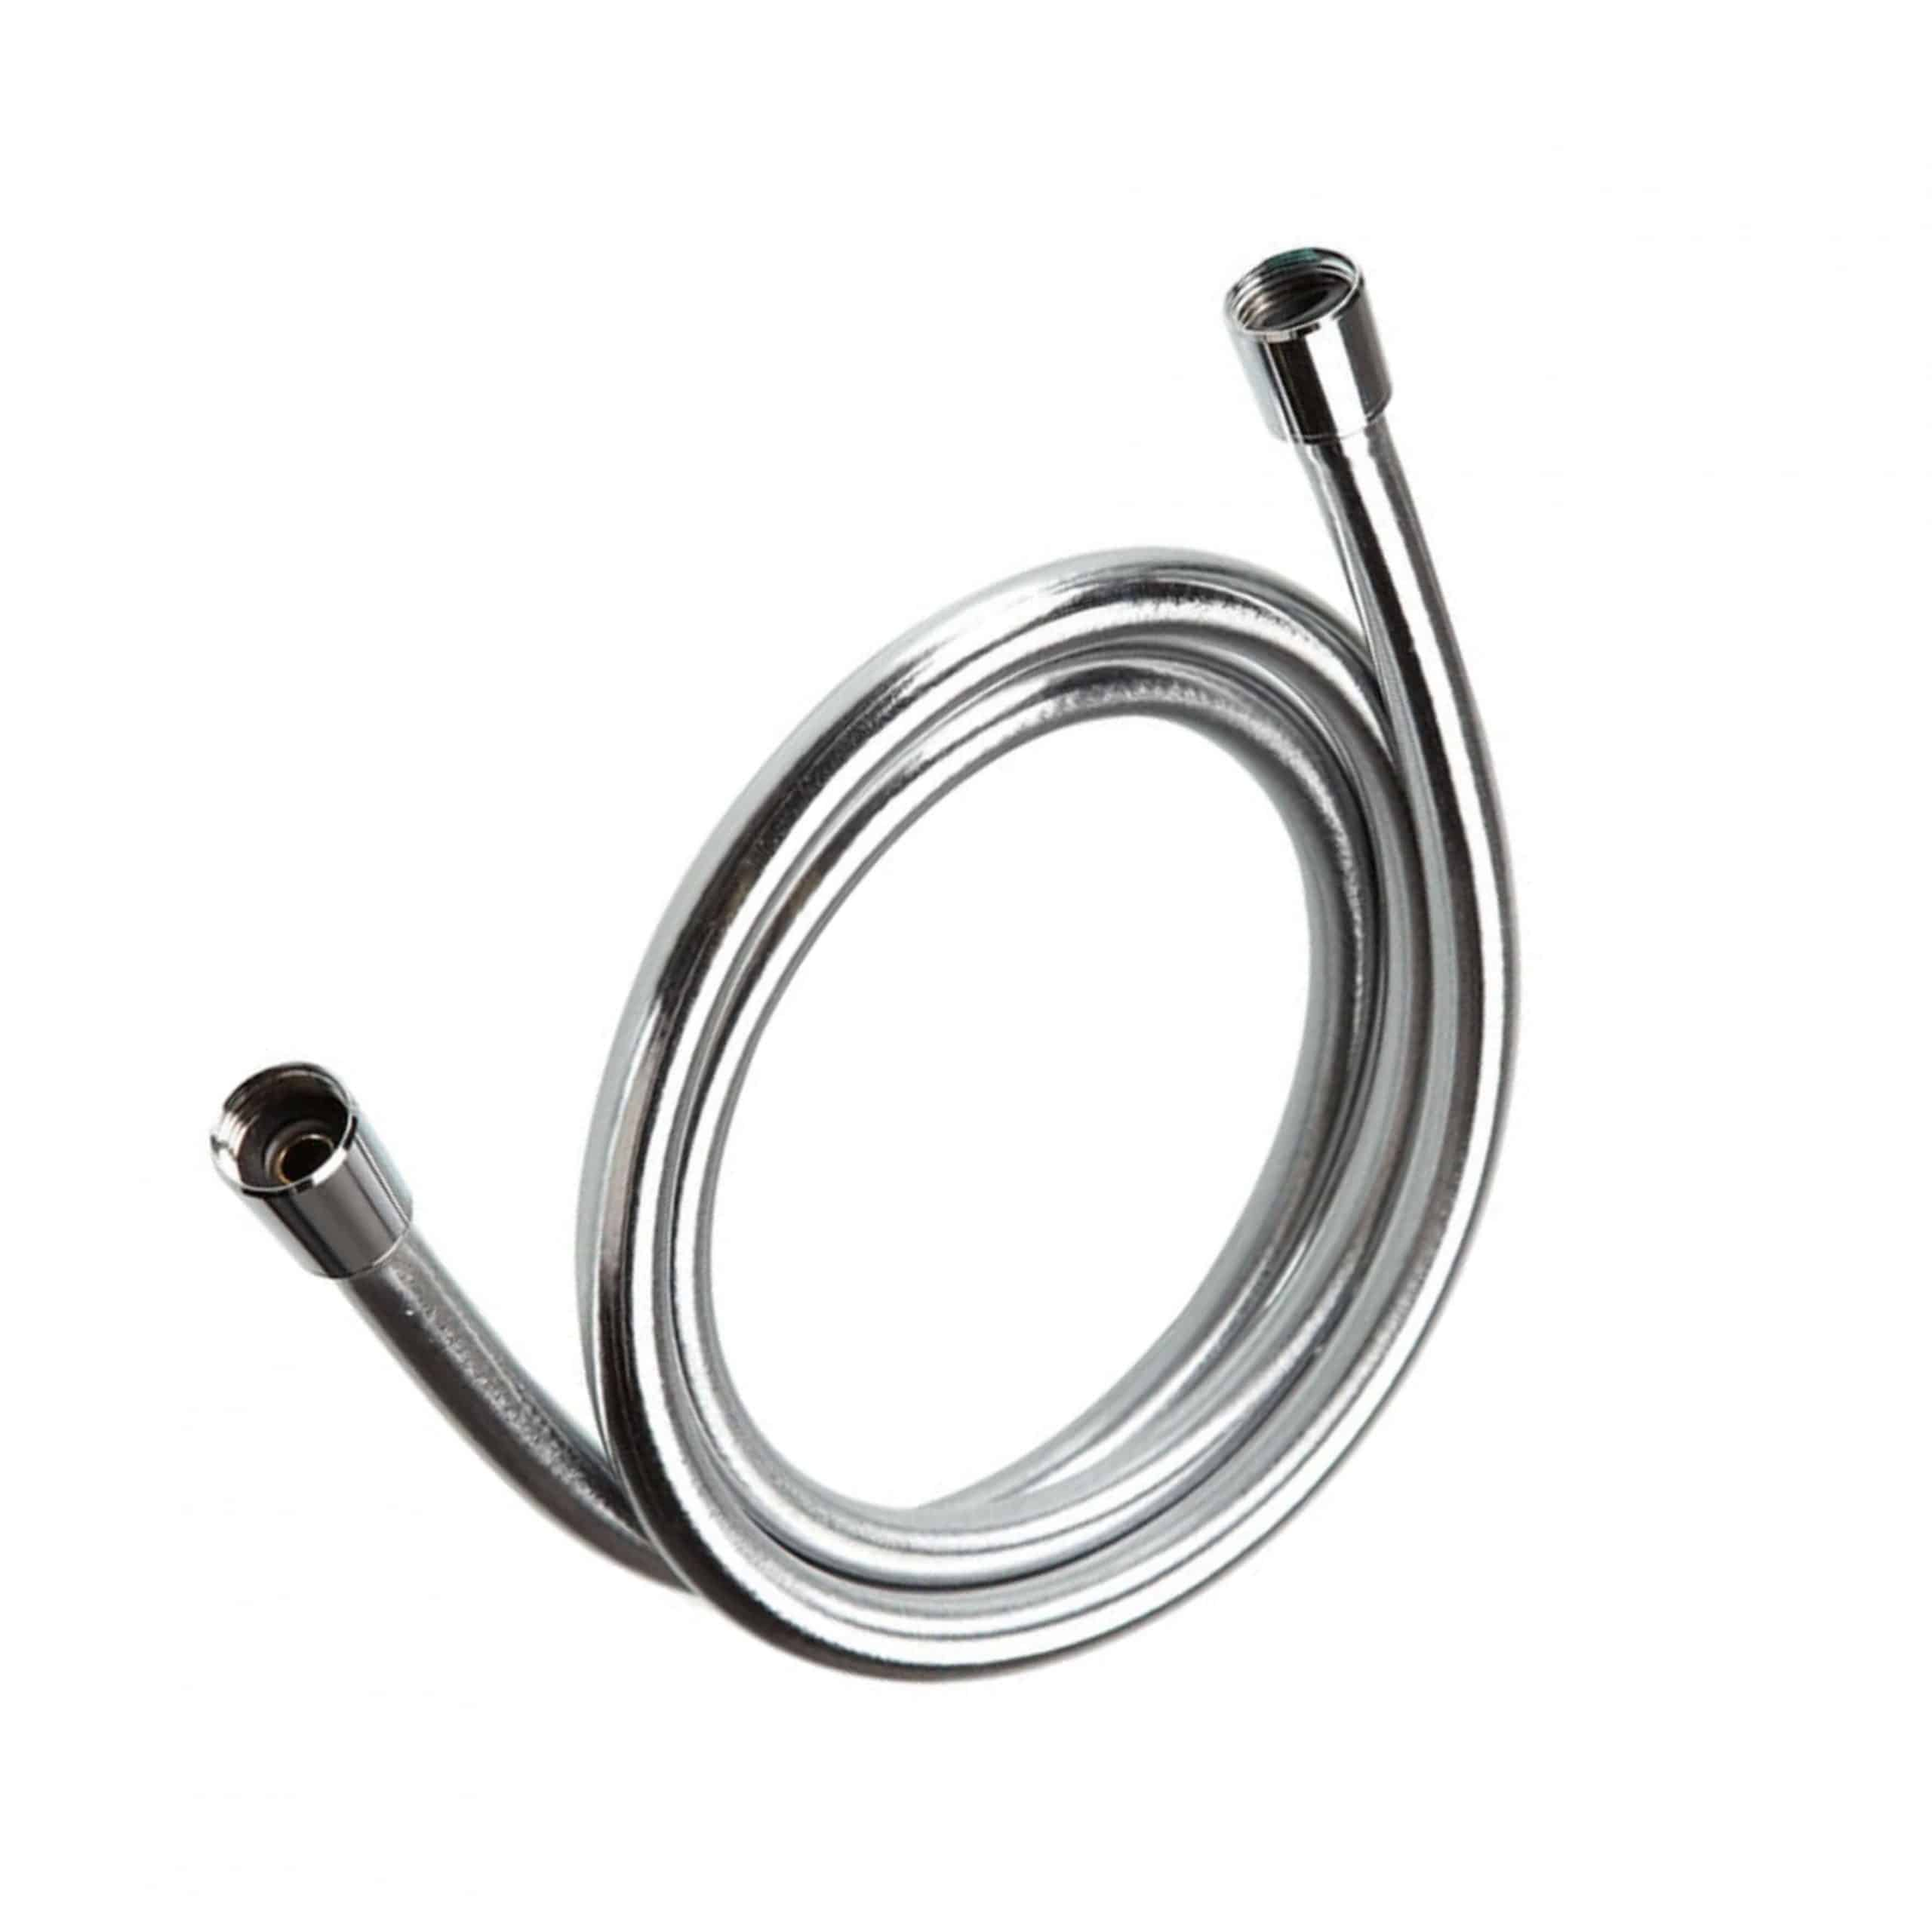 Hansgrohe 1.25m Isiflex Shower Hose 28272000